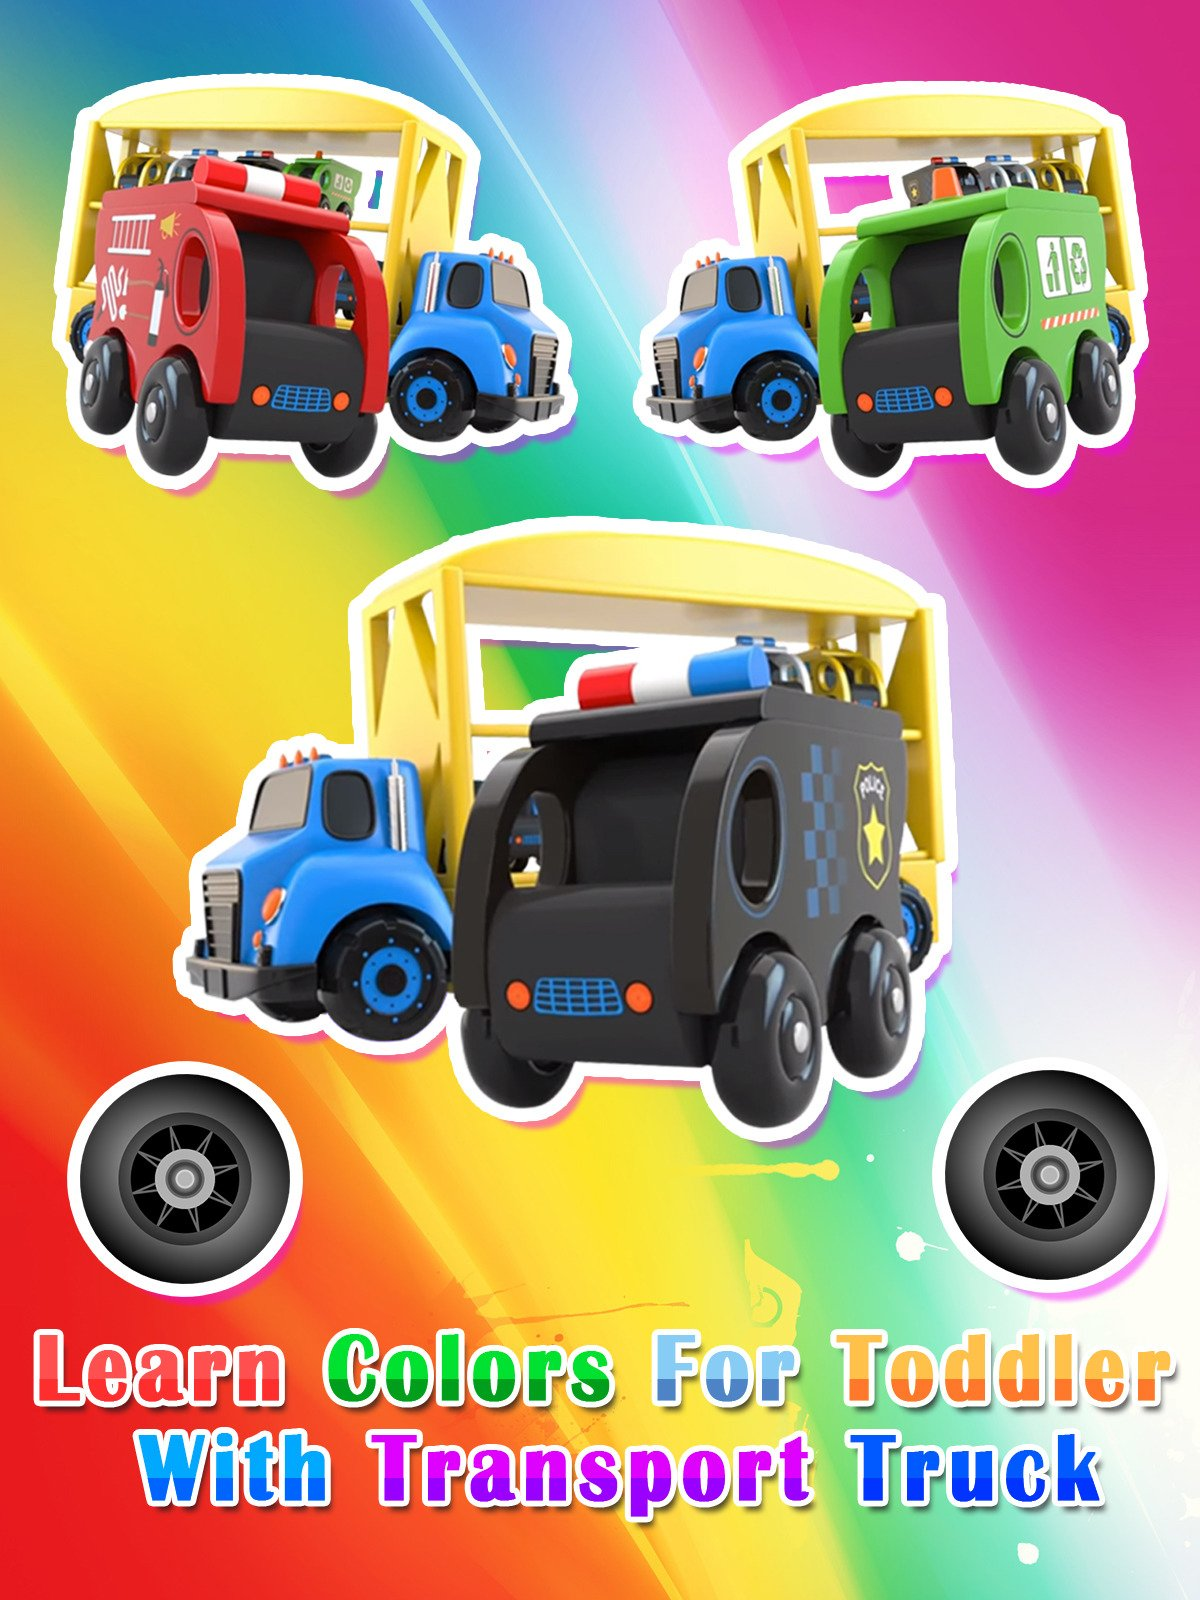 Learn Colors for Toddler with Transport Truck